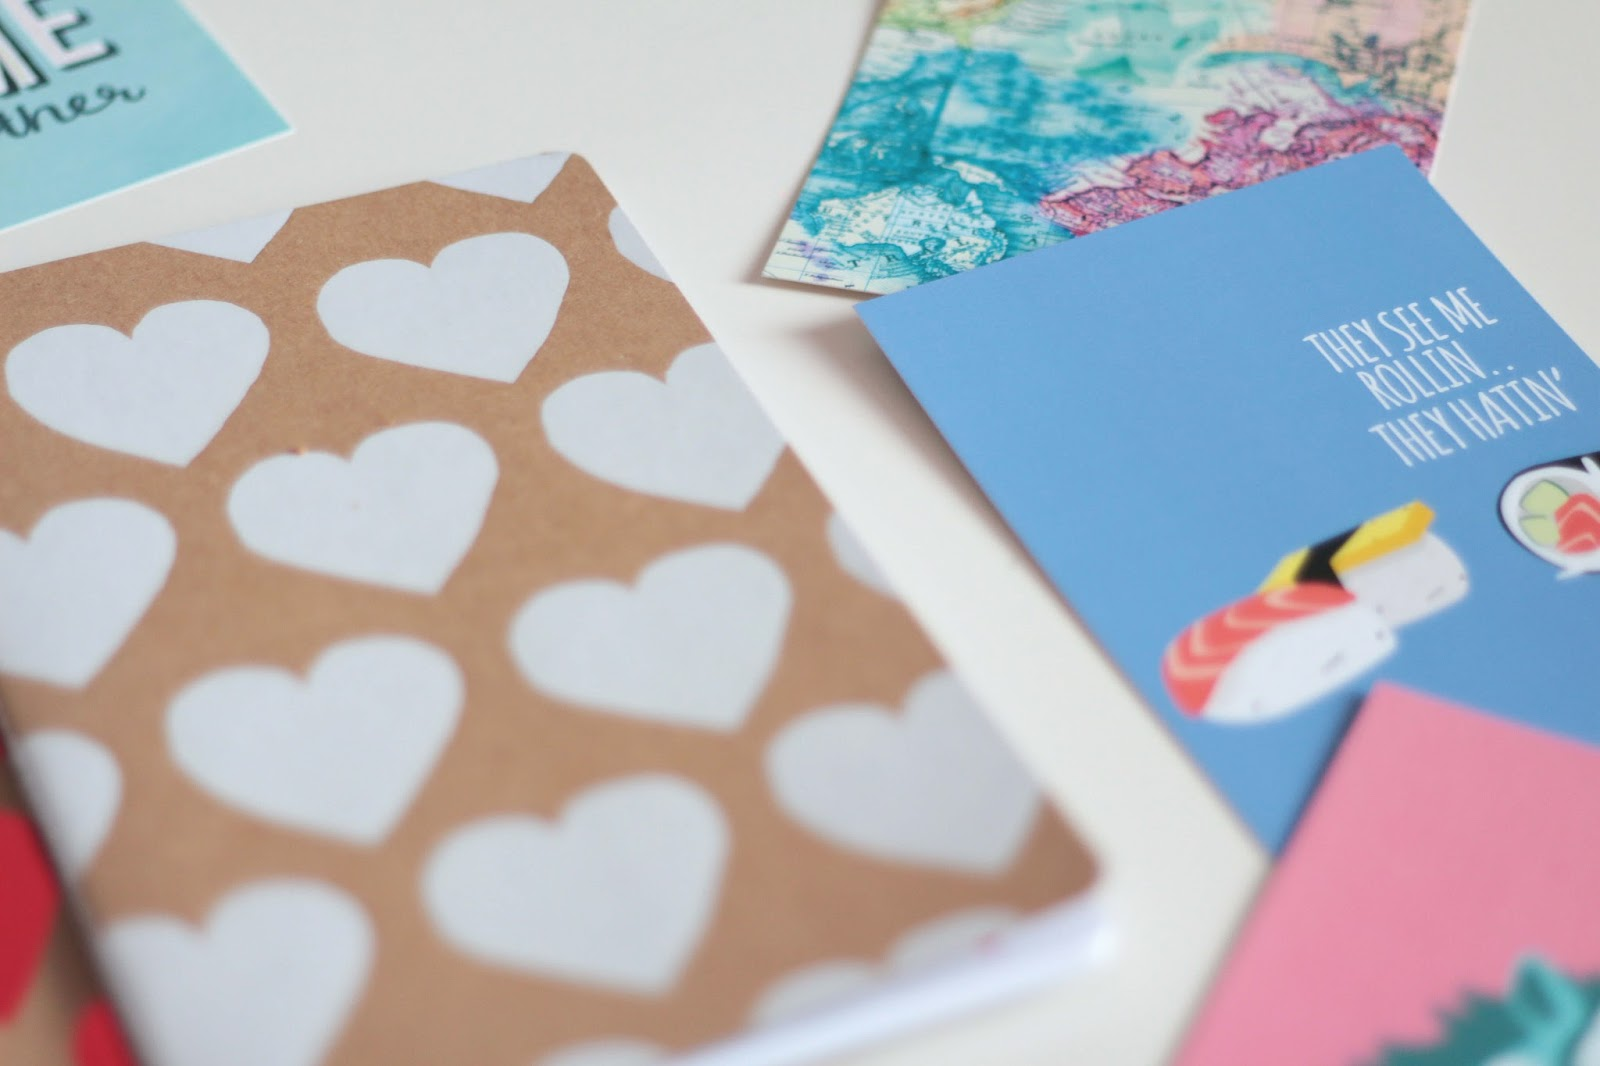 desk lay paperchase notebooks and postcards